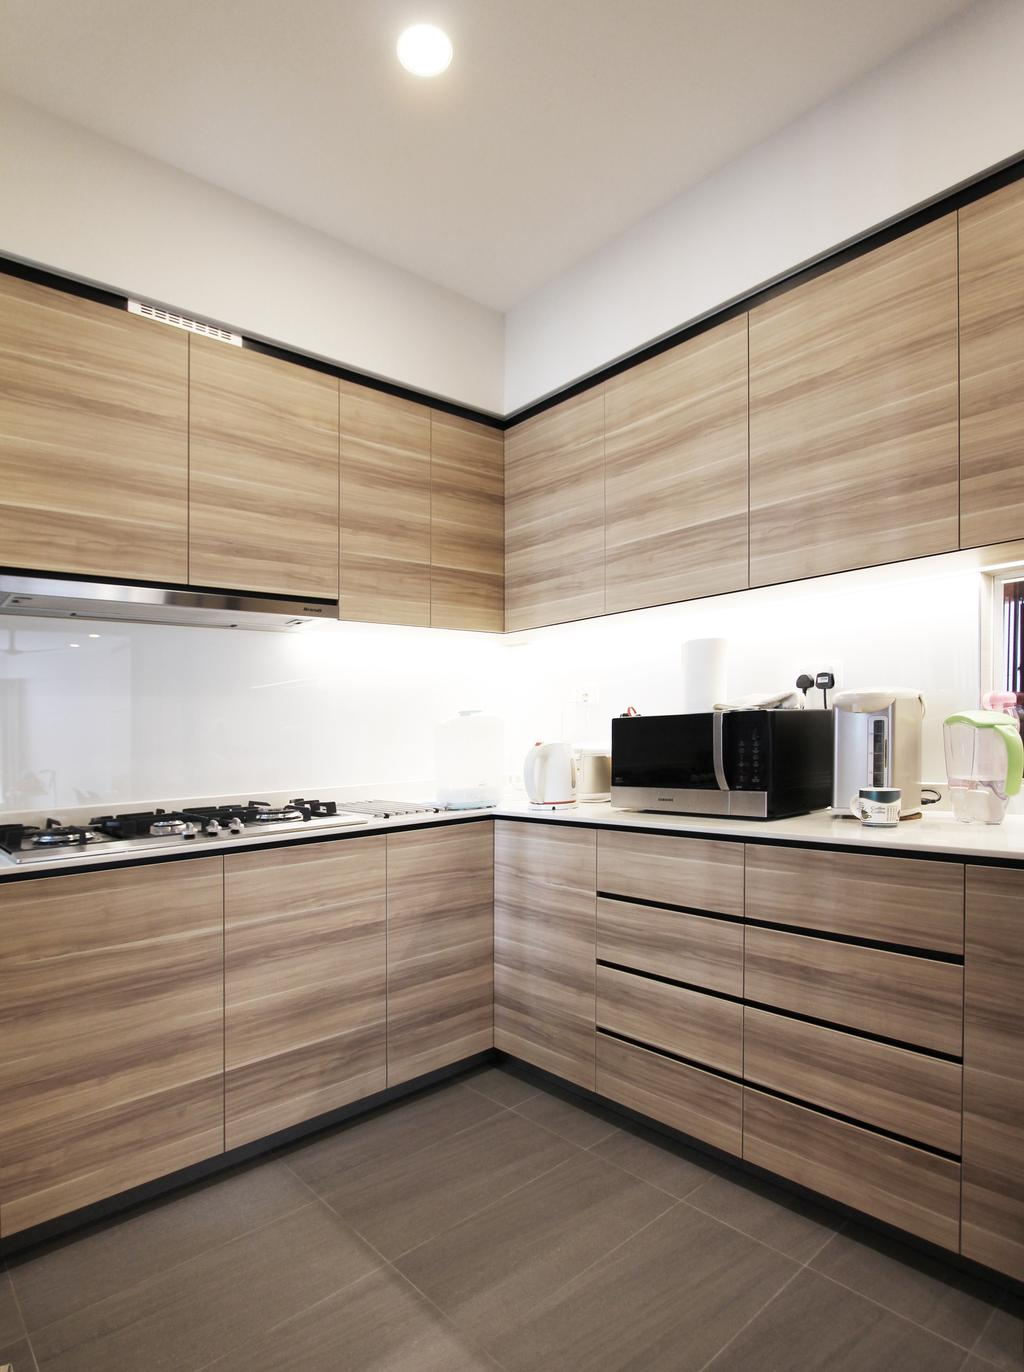 Modern, Condo, Hillside, Architect, Dreammetal, Appliance, Electrical Device, Microwave, Oven, Indoors, Interior Design